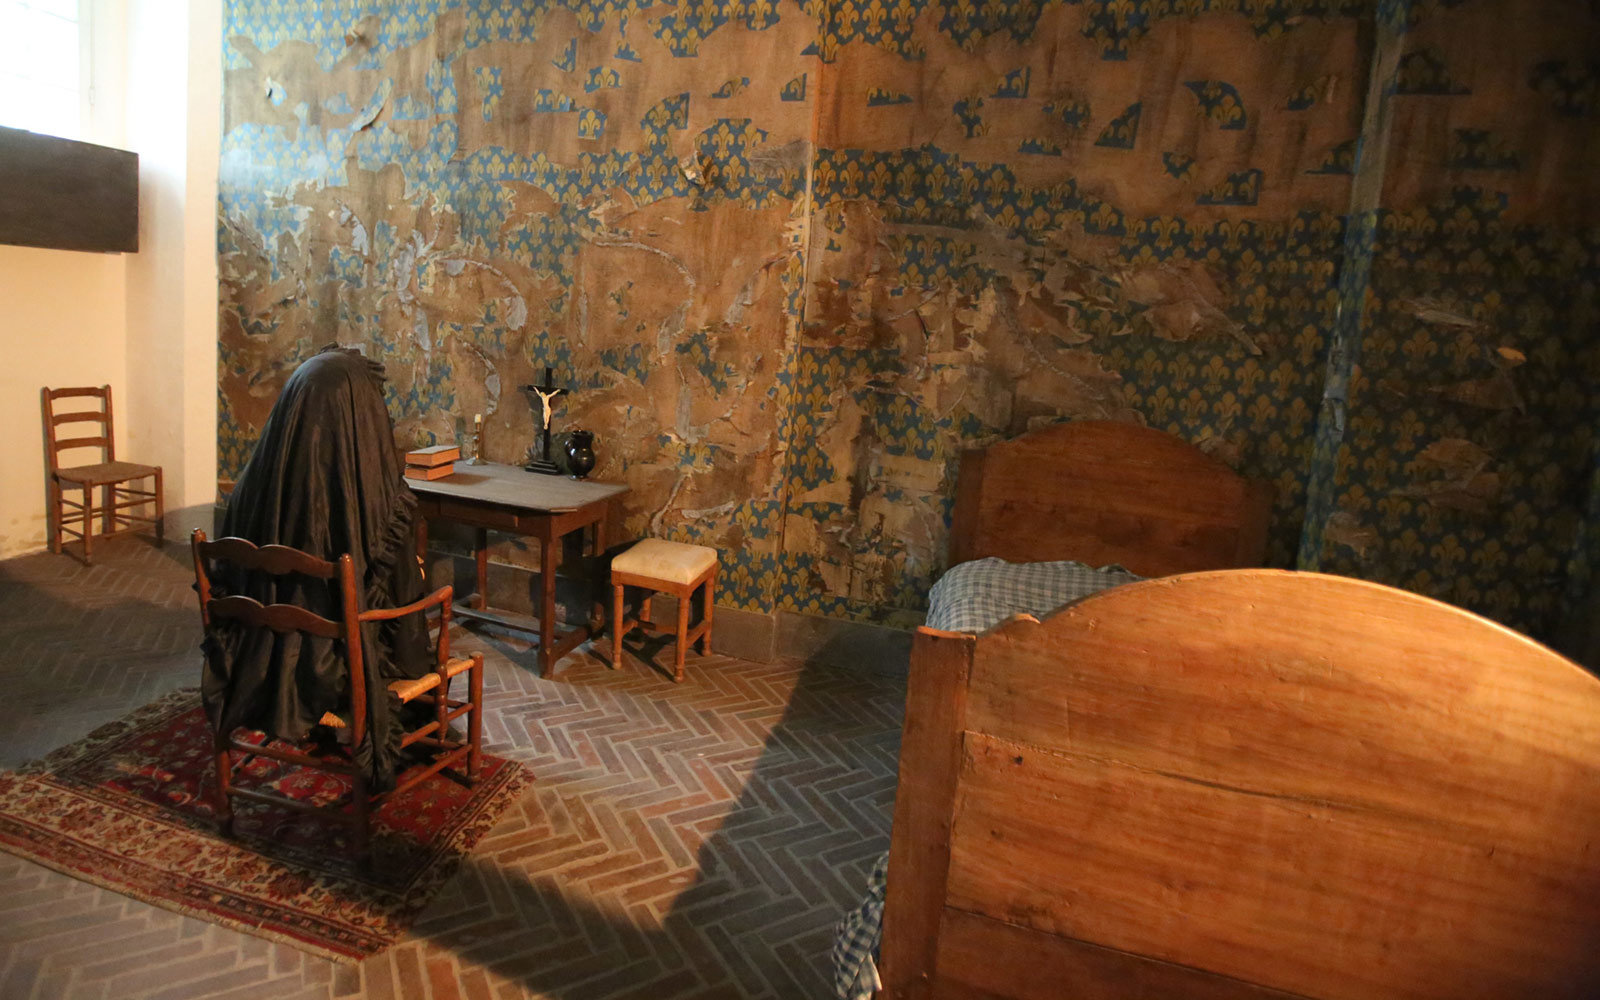 Marie Antoinette's prison cell, The Conciergerie, Paris, France